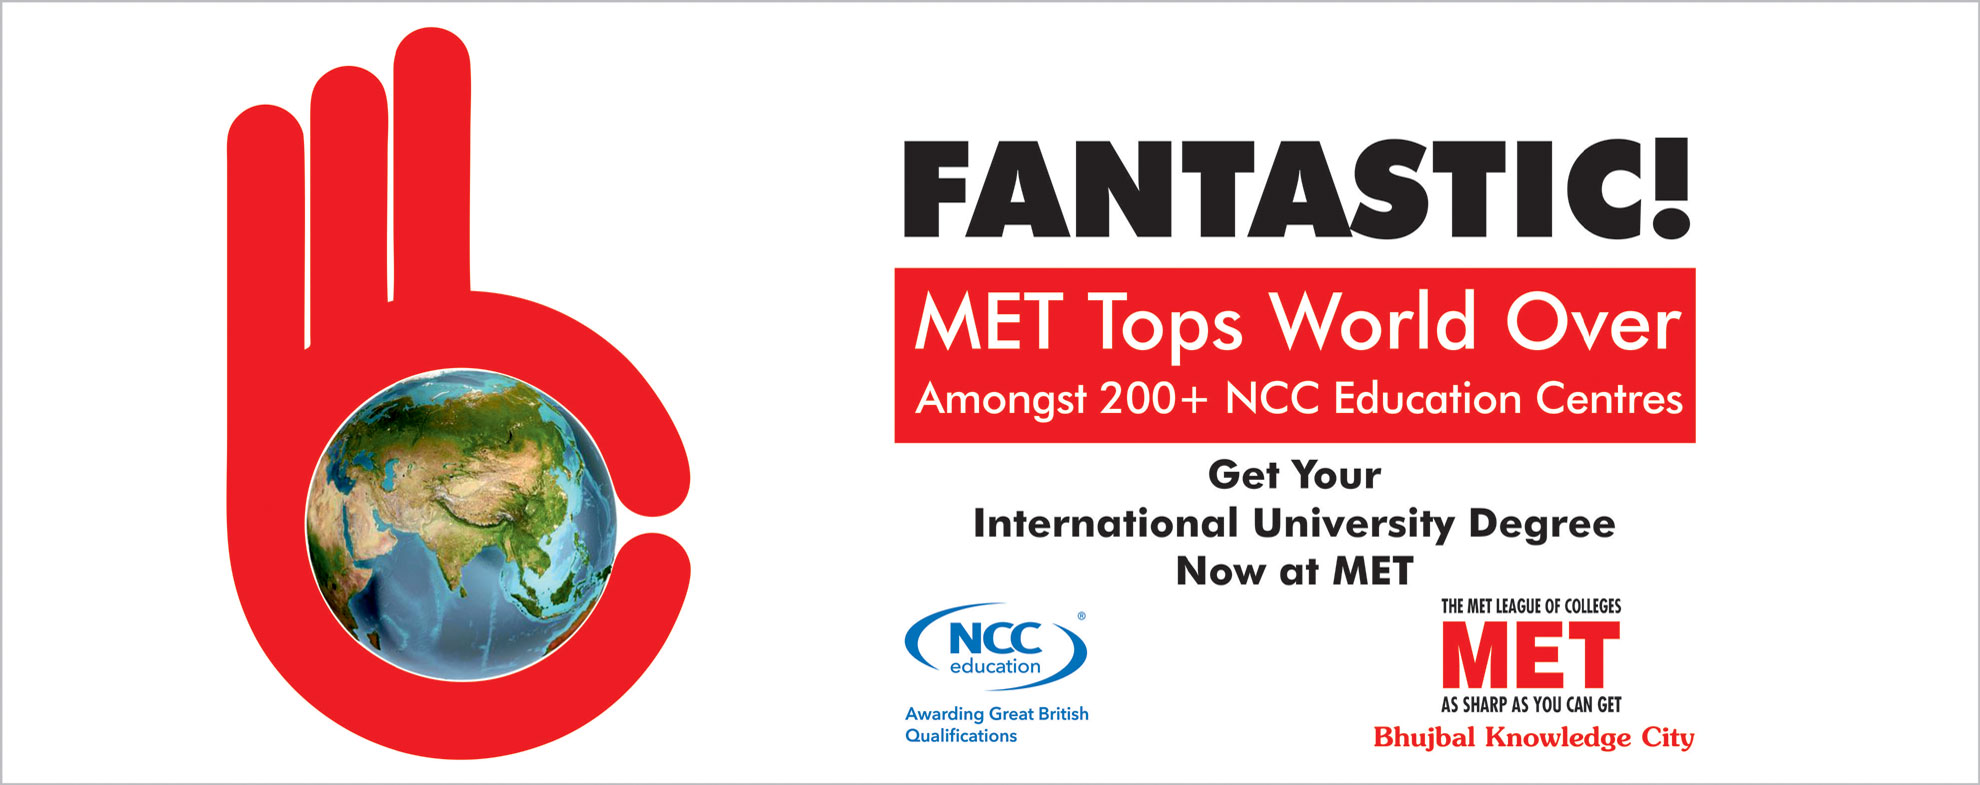 MET-TOP-THE-WORLD